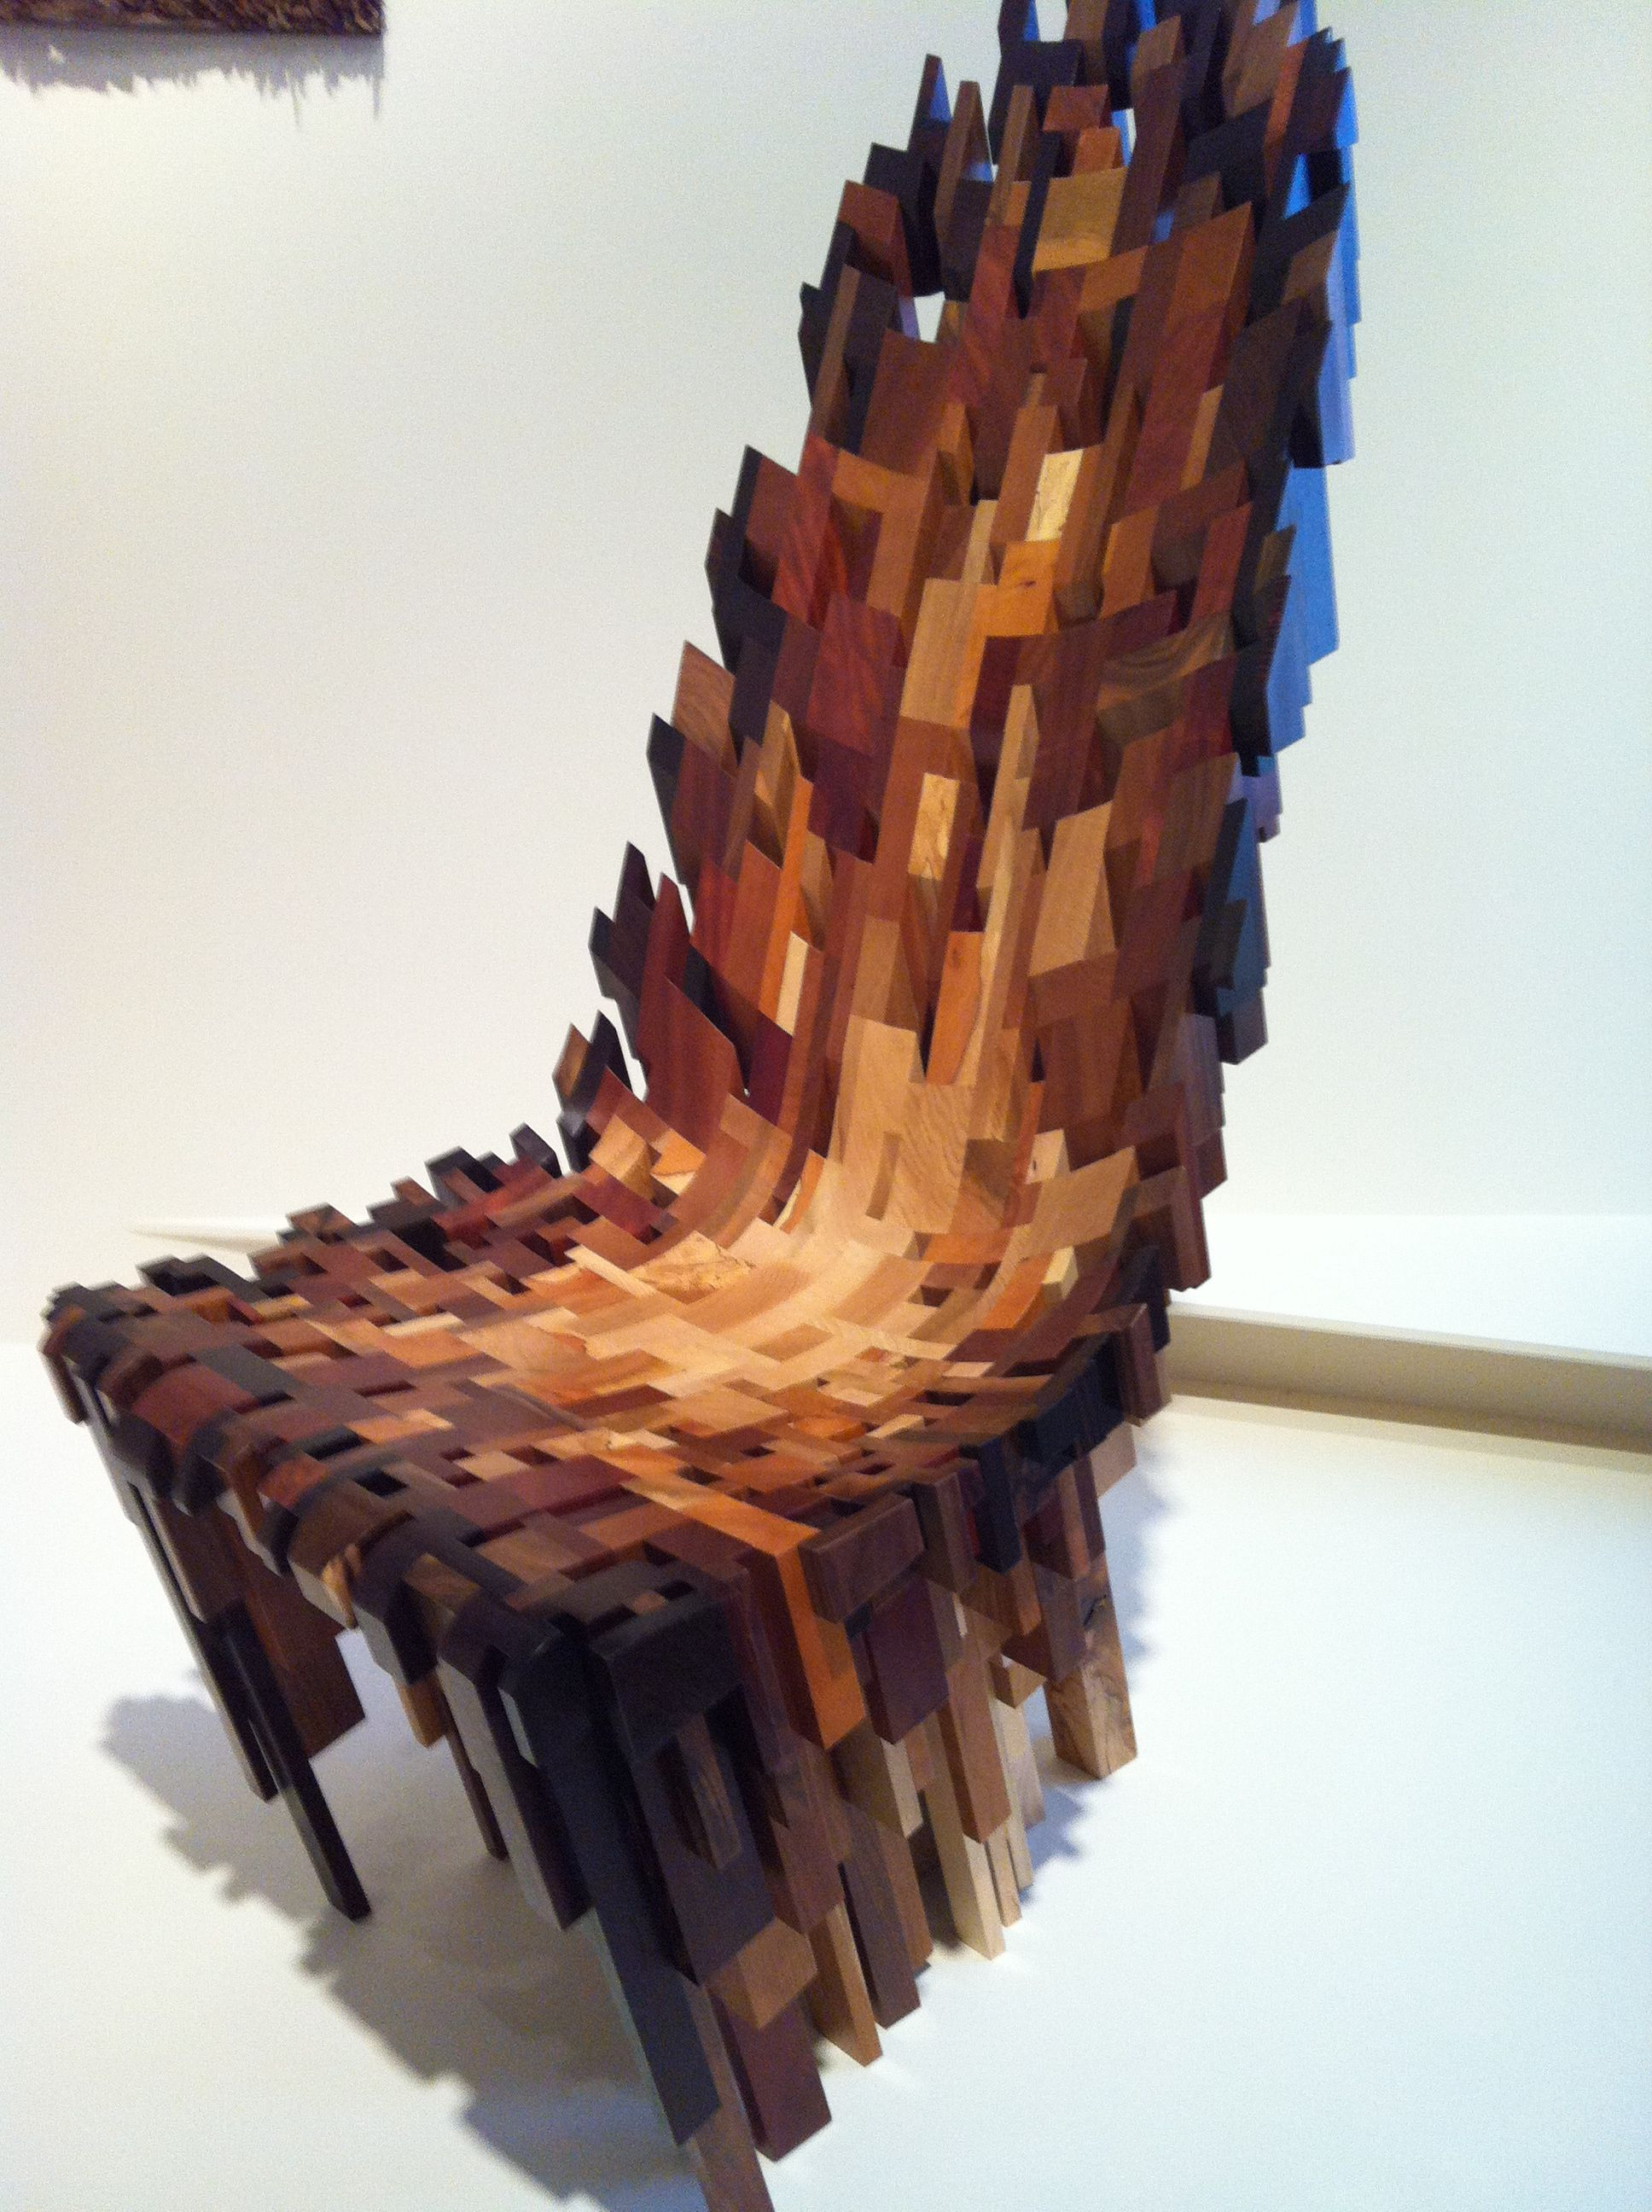 Arts And Crafts Design In Contemporary Art